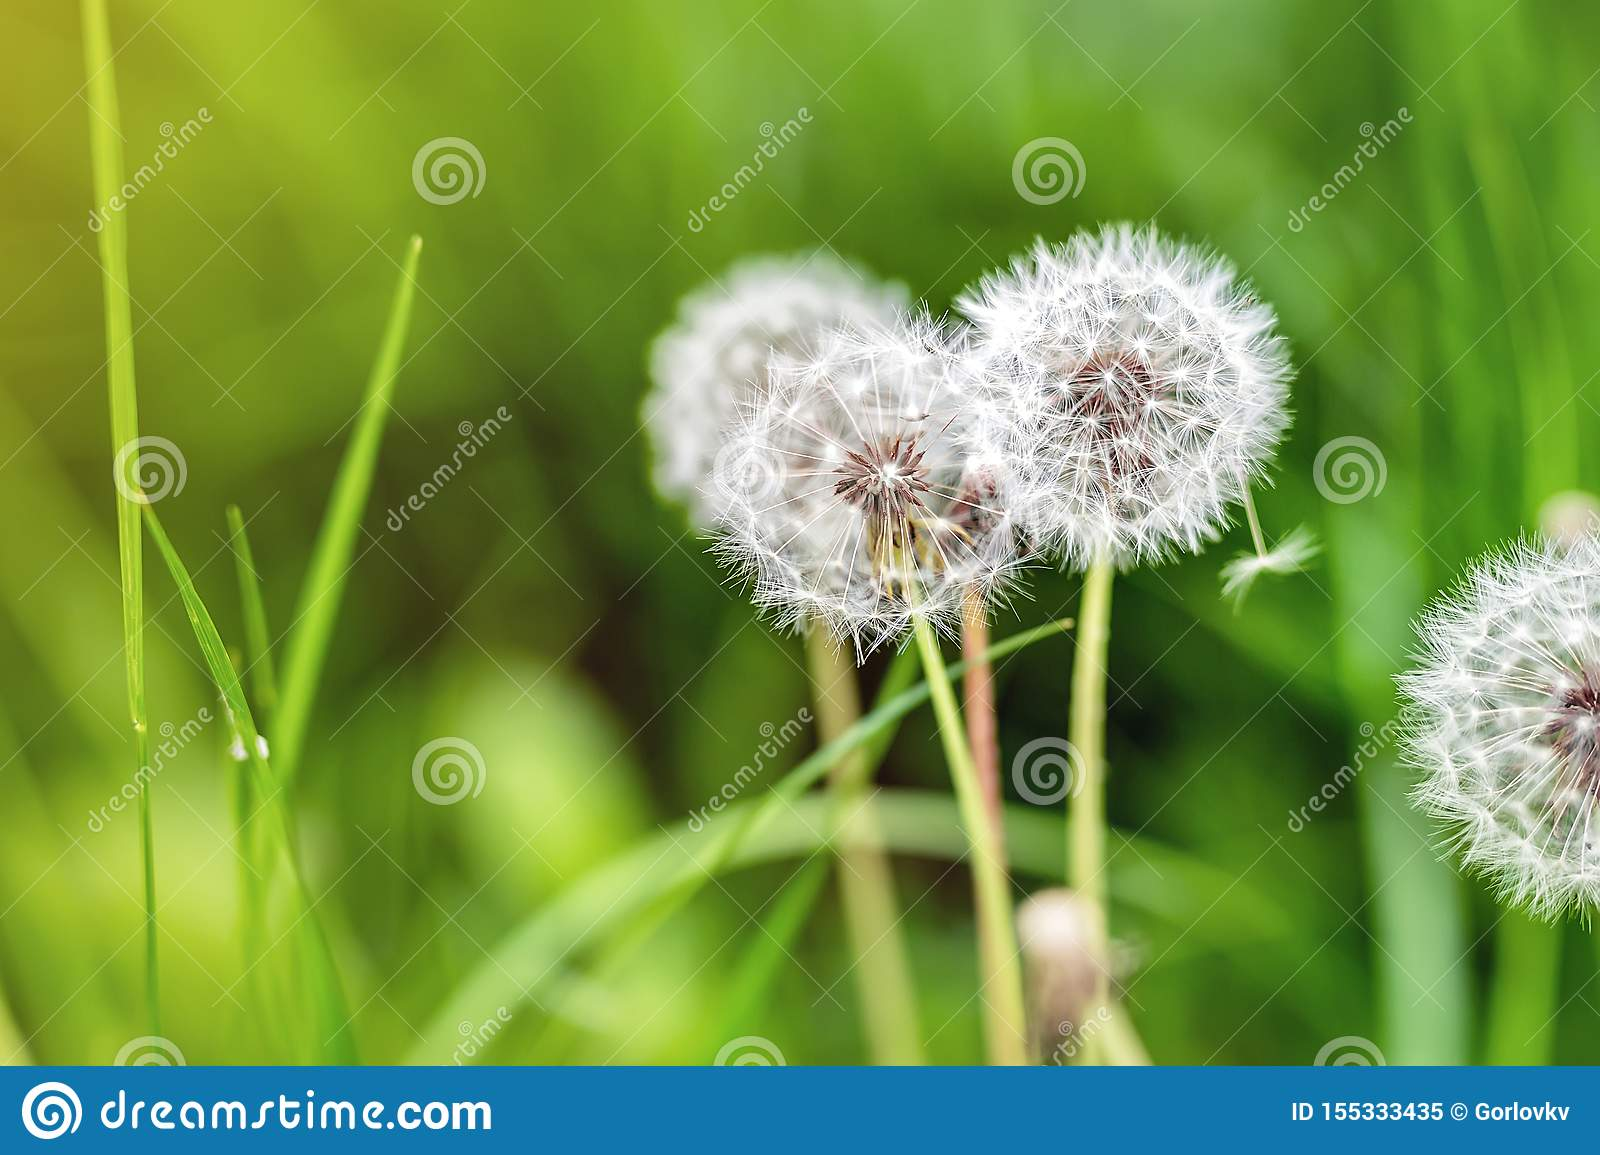 Beautiful white fluffy dandelion flowers among green grass meadow with blurred backgdrop. Summer or autumn nature bright natural